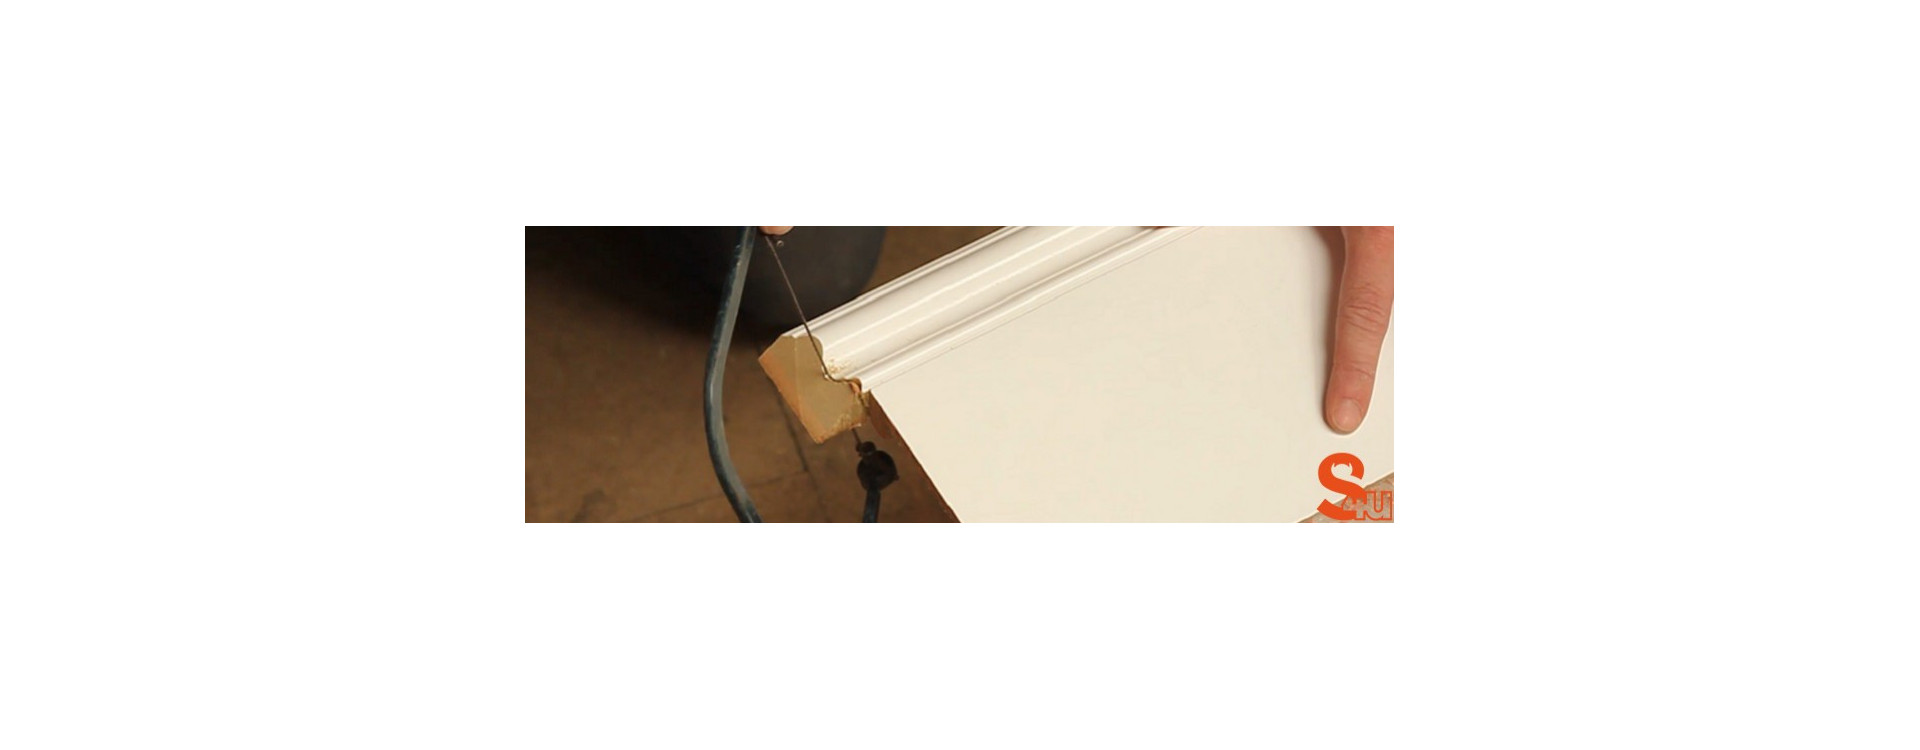 How To: Fitting Skirting over Skirting (Skirting Board Covers)